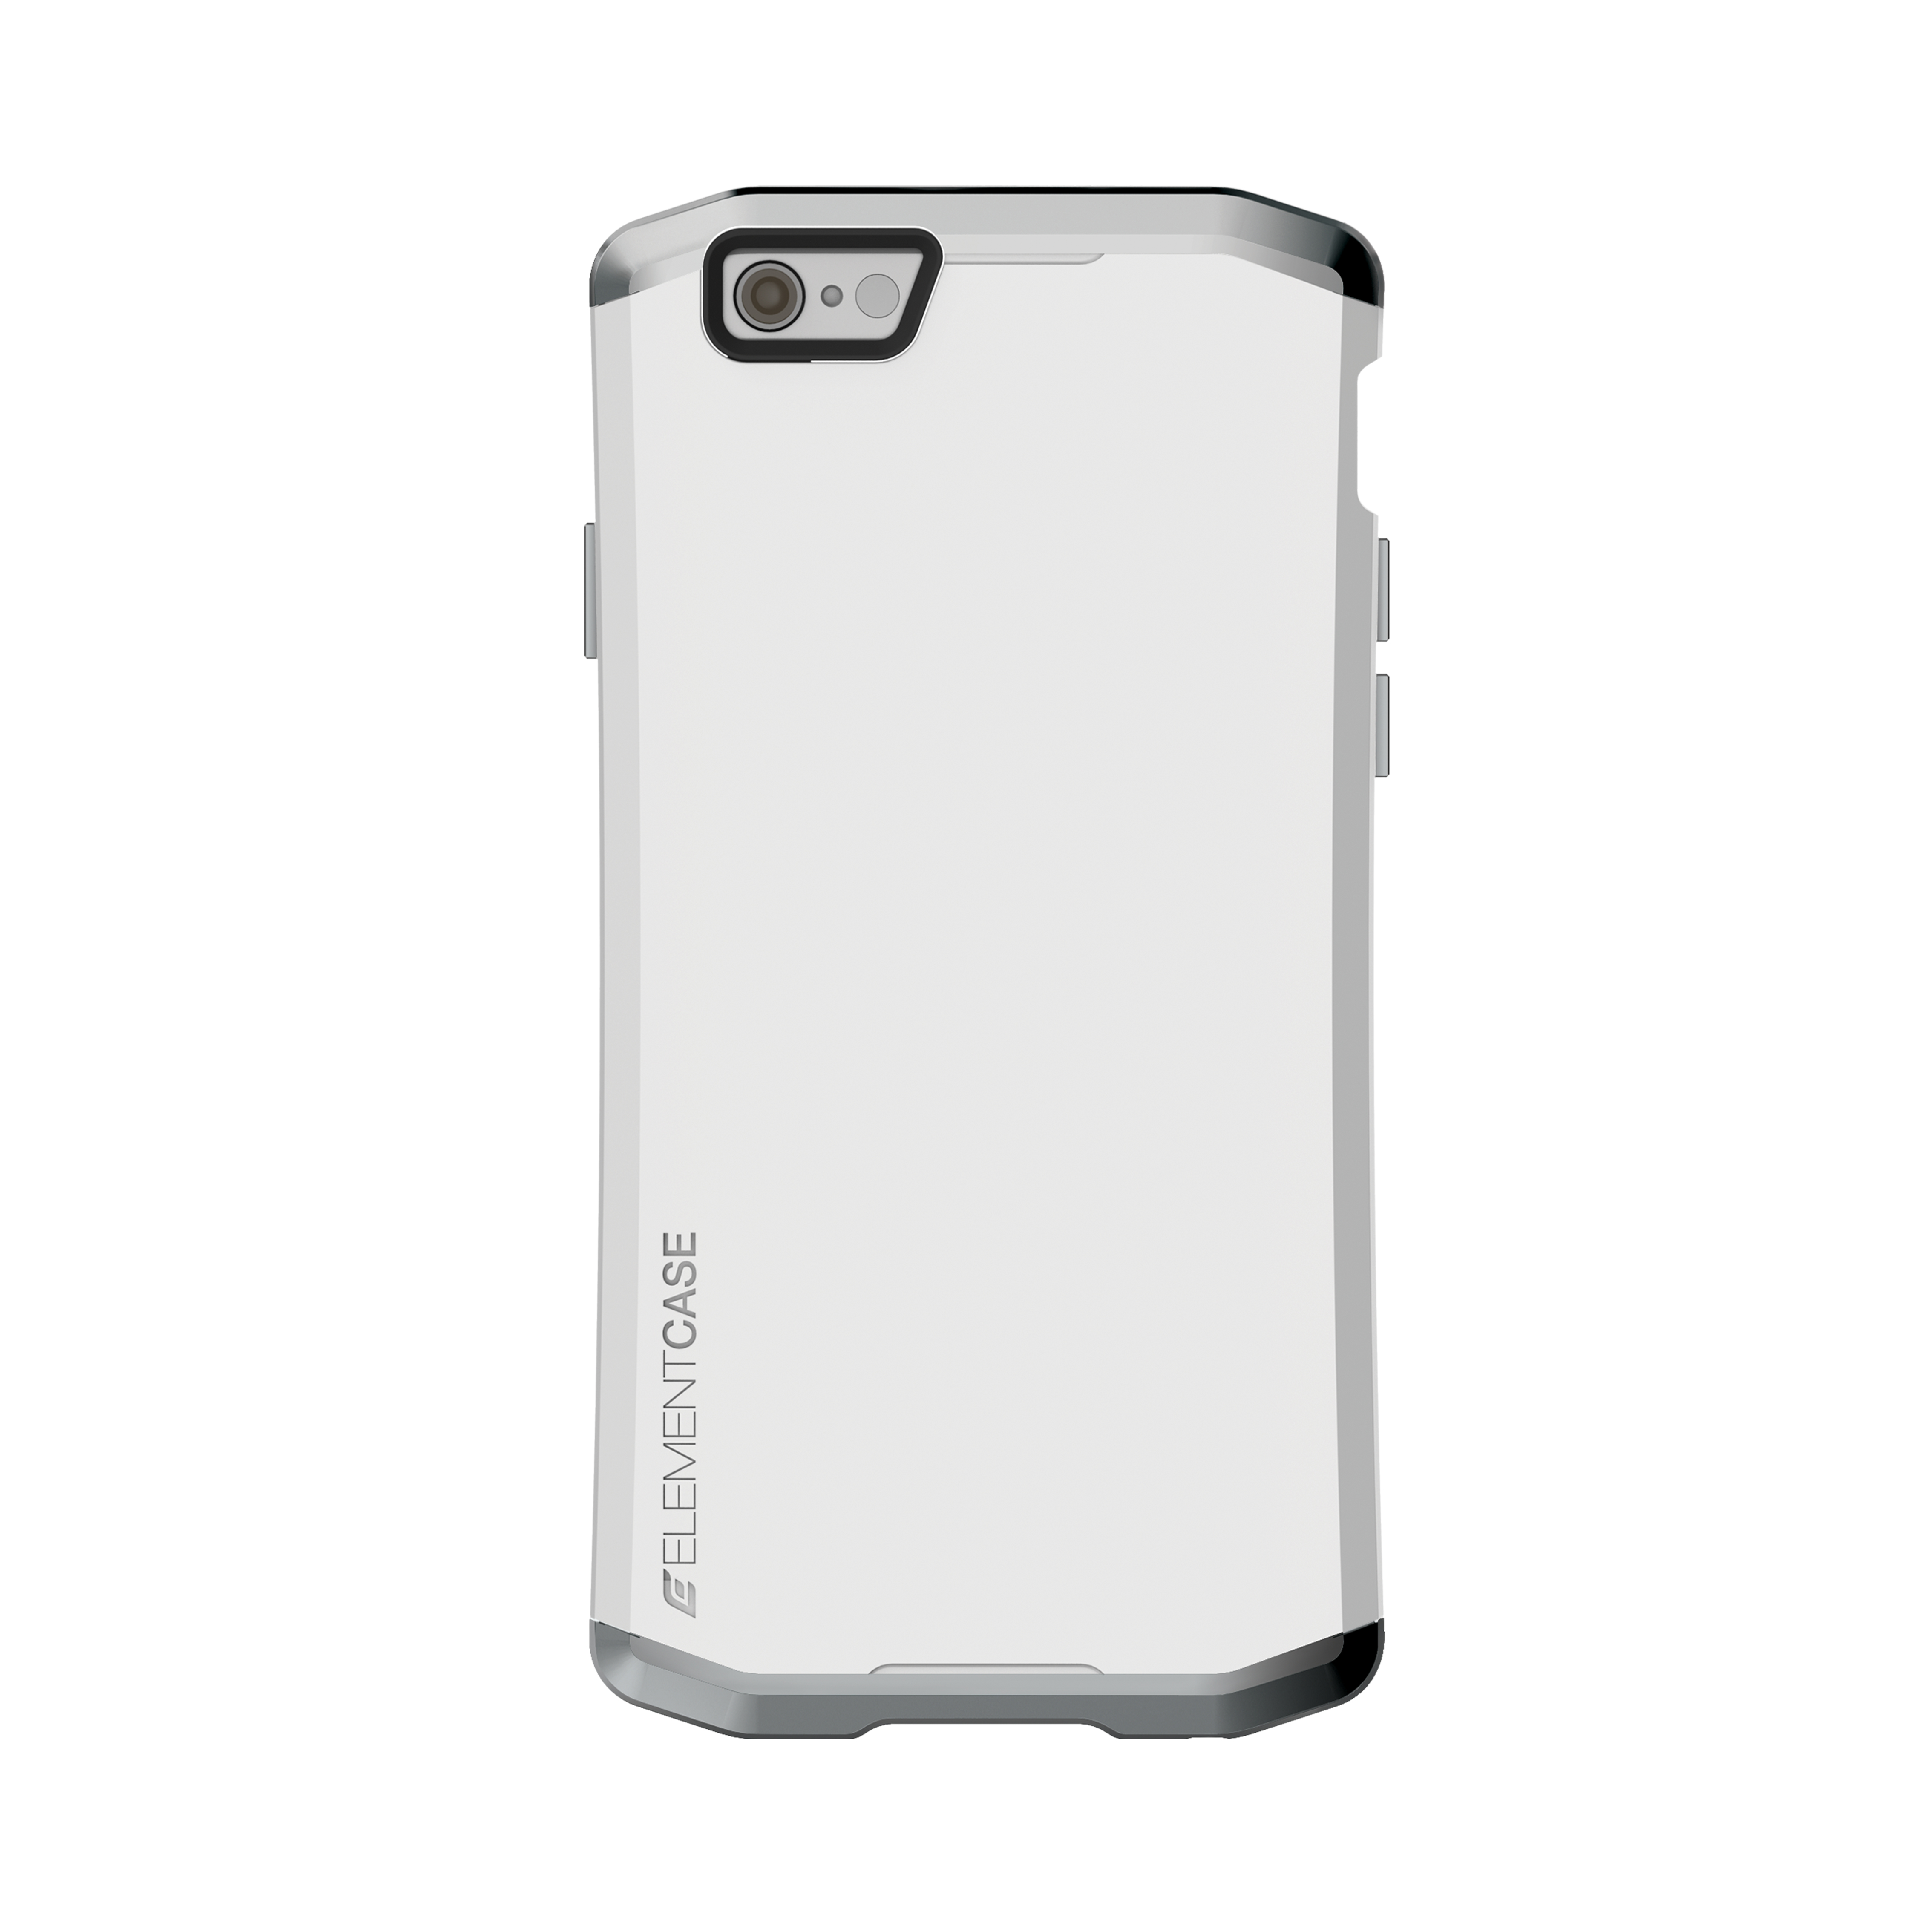 Billede af Element Case Solace (Chroma) II for iPhone 6/6s silver colored